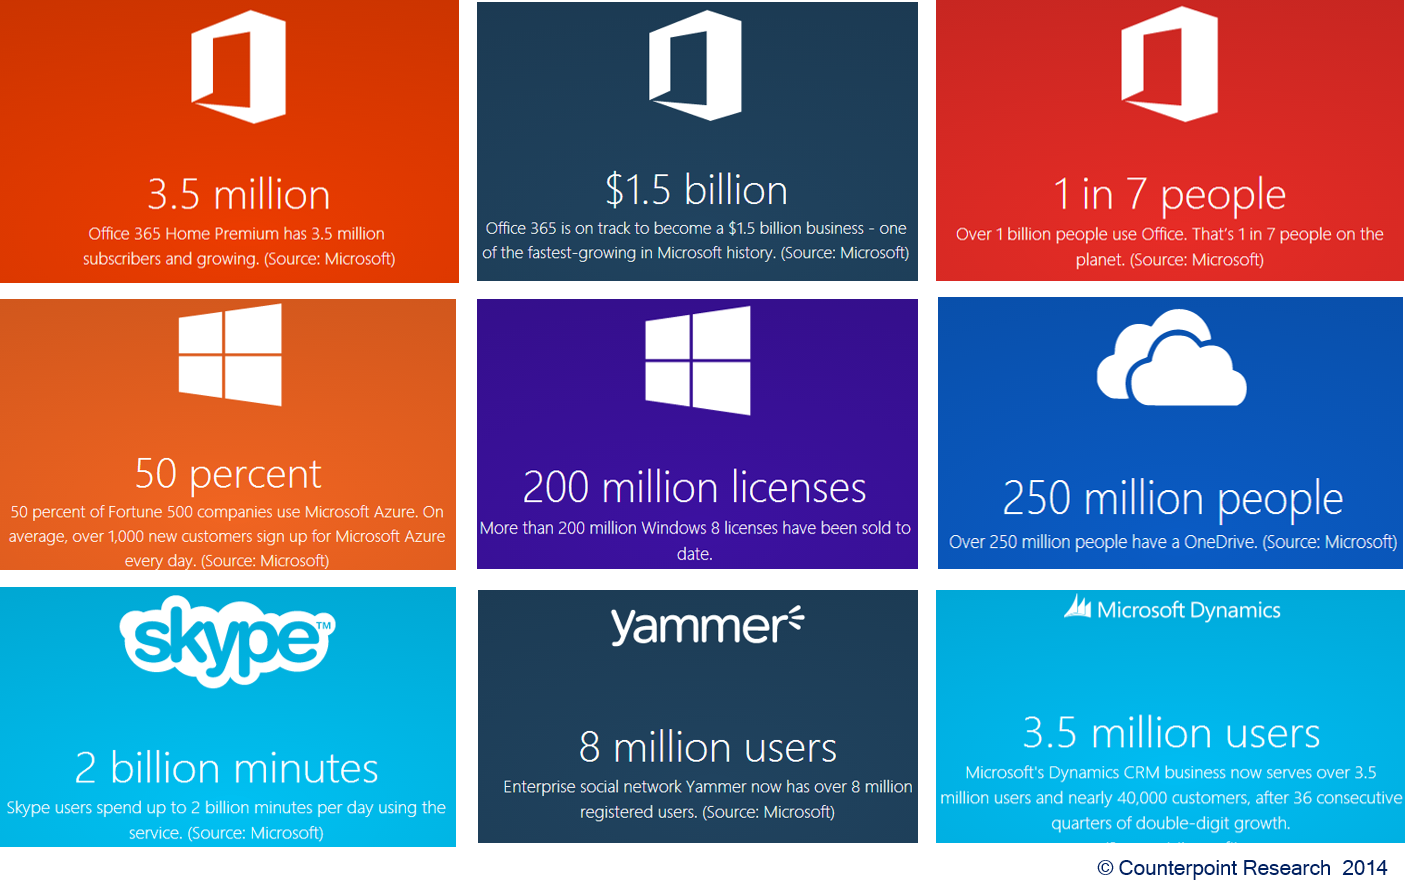 Microsoft Metrics 2014 - Counterpoint Research